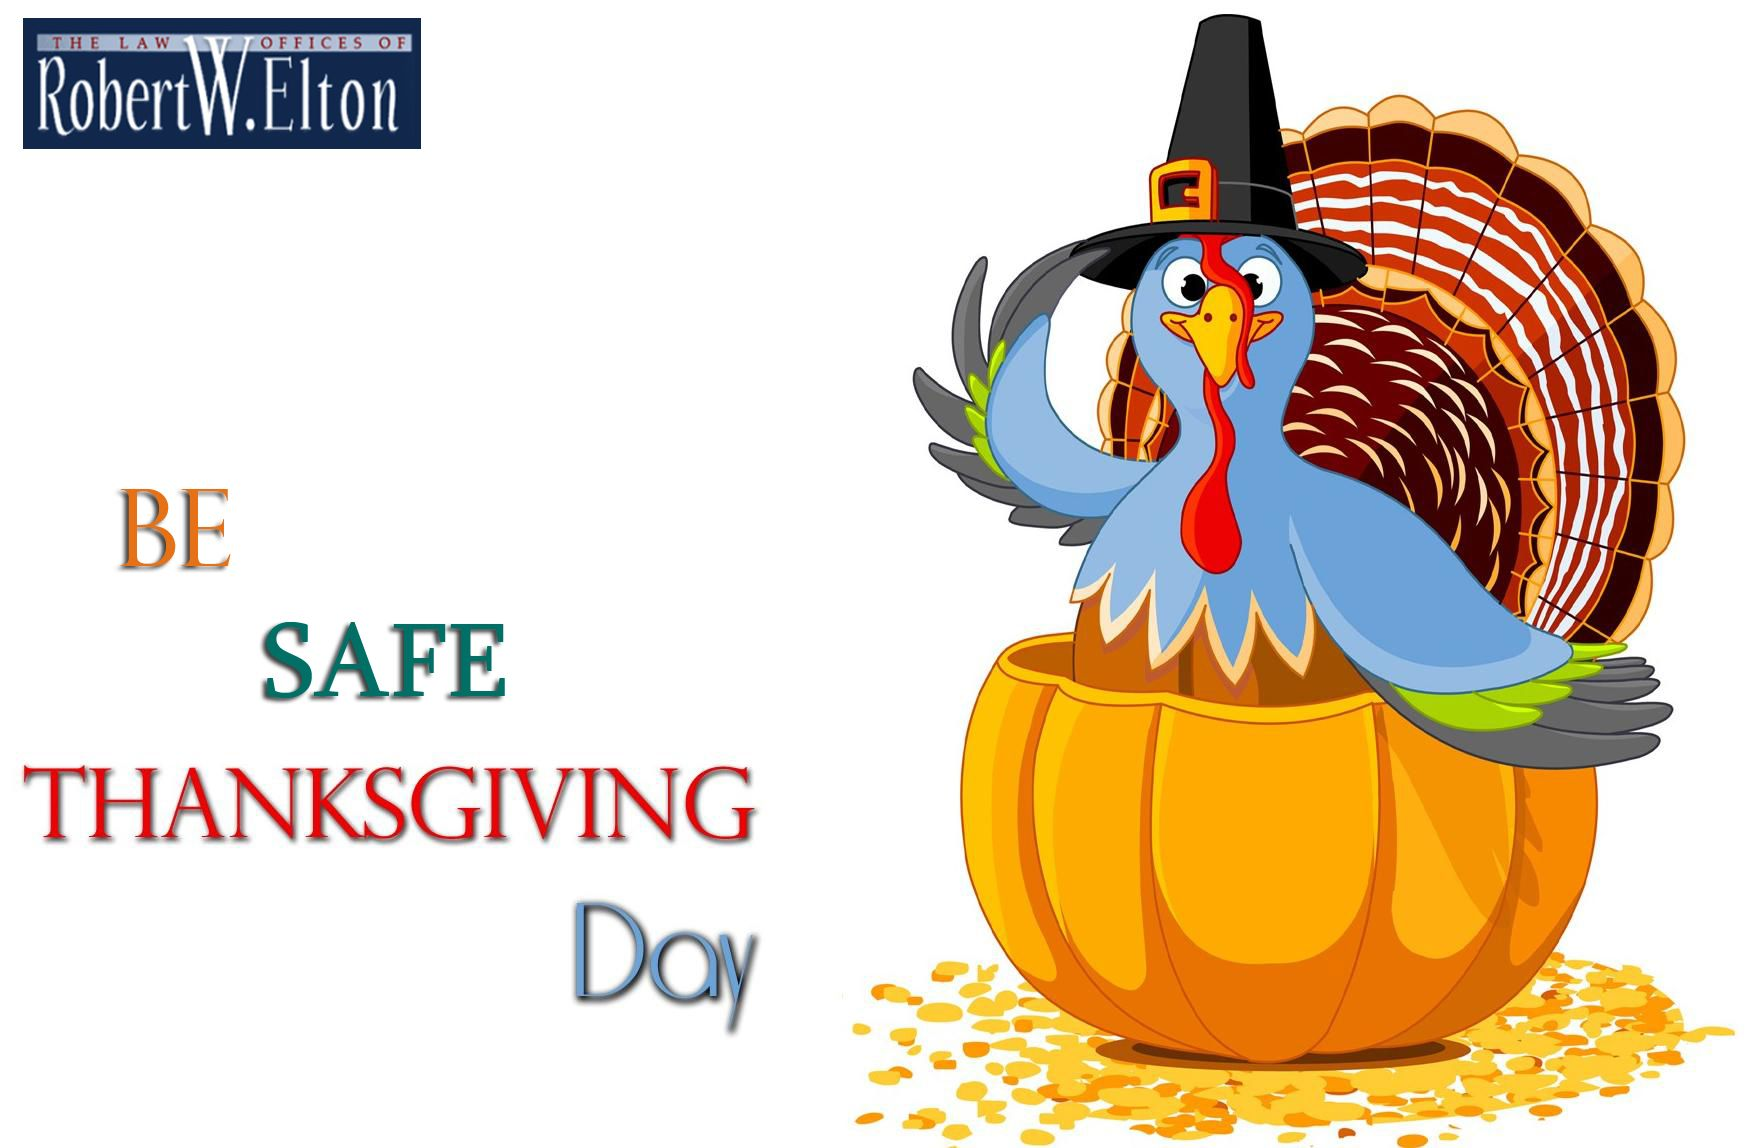 http://www.eltonlaw.com/thanksgiving-auto-accident-stats-in-florida-what-you-need-to-know/ - #Thanksgiving Auto Accident Stats in #Florida: What You Need to Know